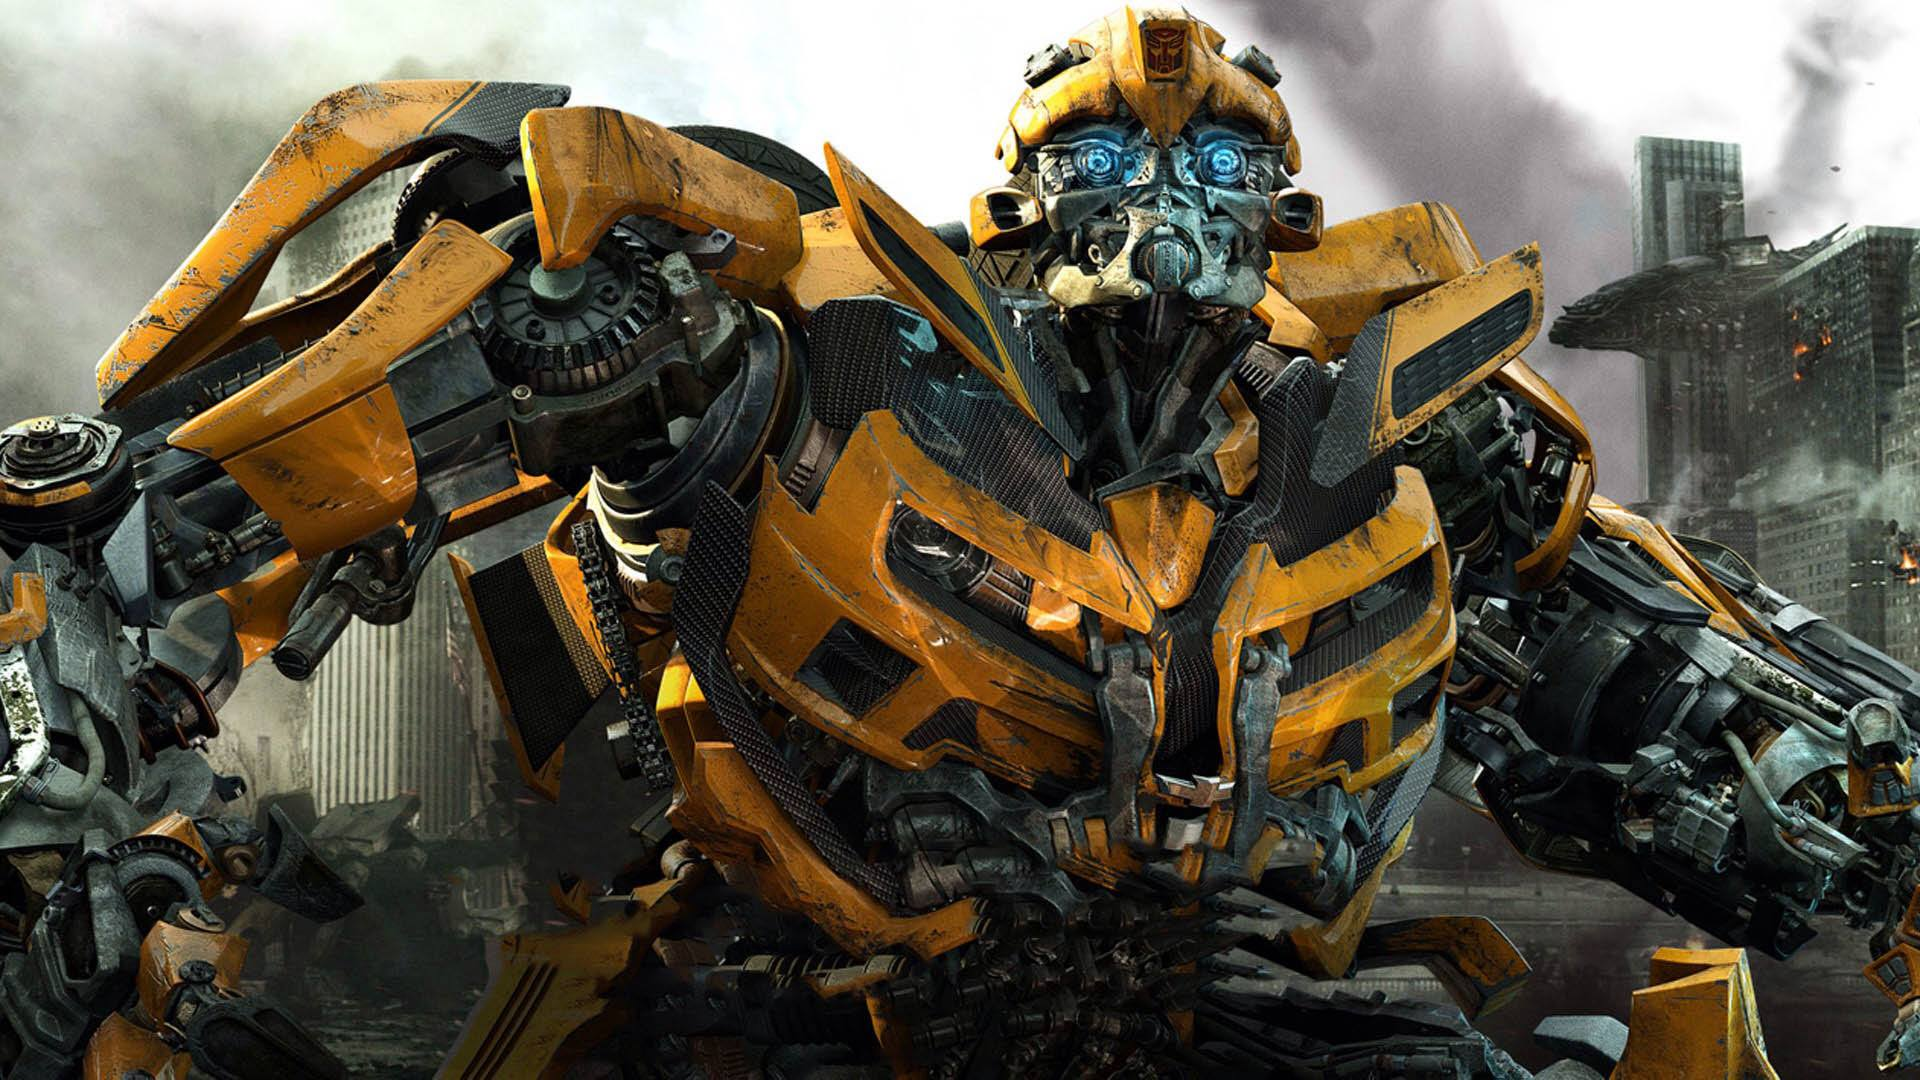 Bumblebee in Transformers: Age of Extinction.